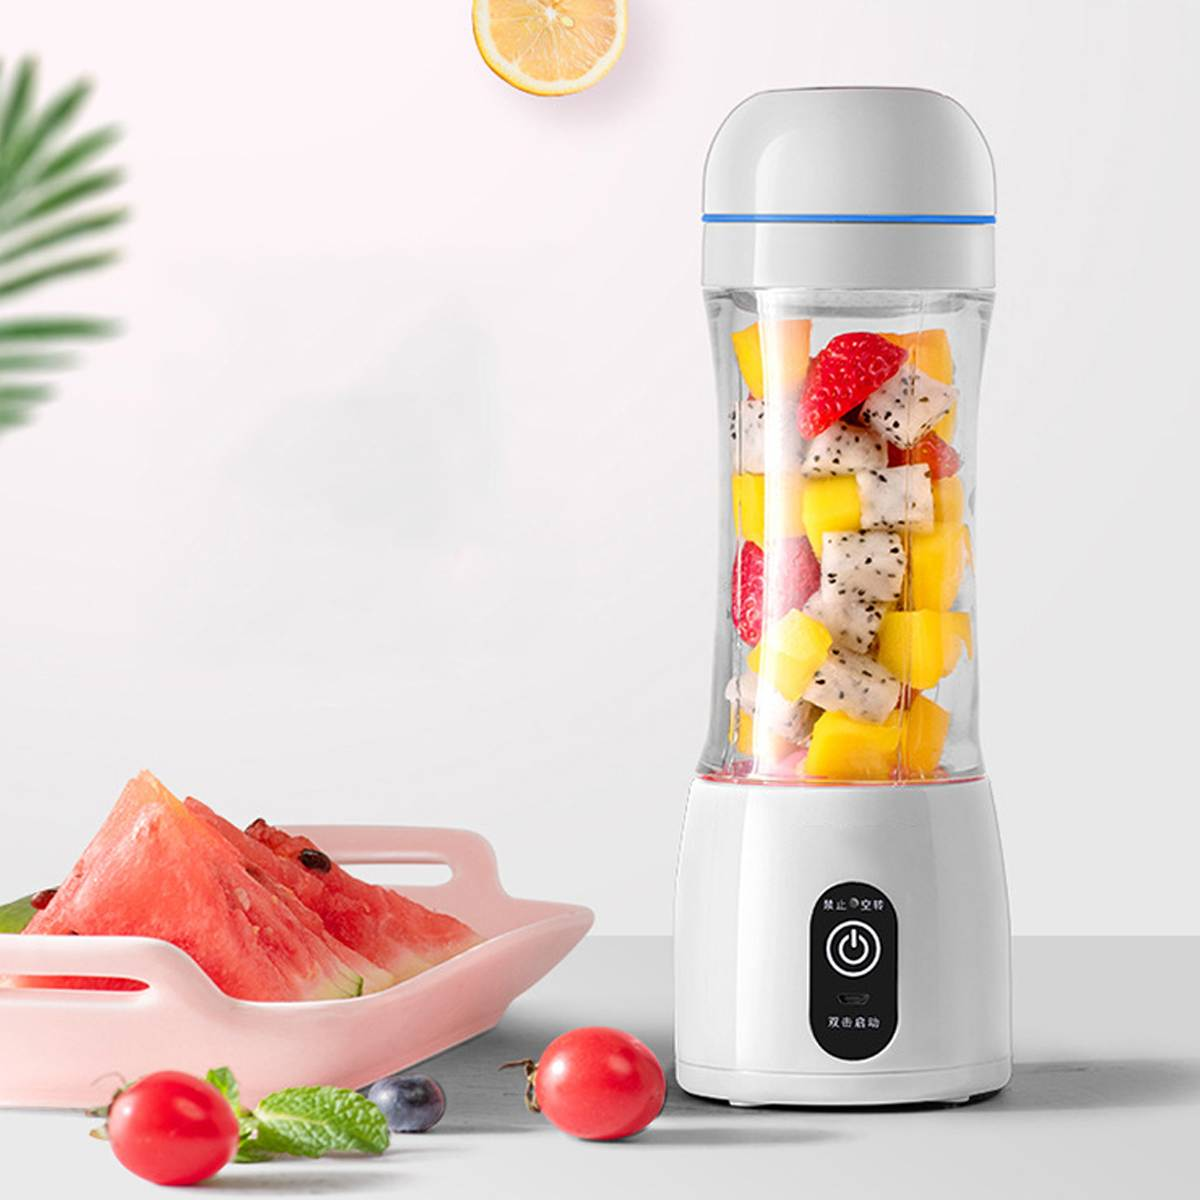 400ml Portable Juicer Electric USB Rechargeable Smoothie Machine Mixer Mini Juice Cup Maker Fast  Food Processor